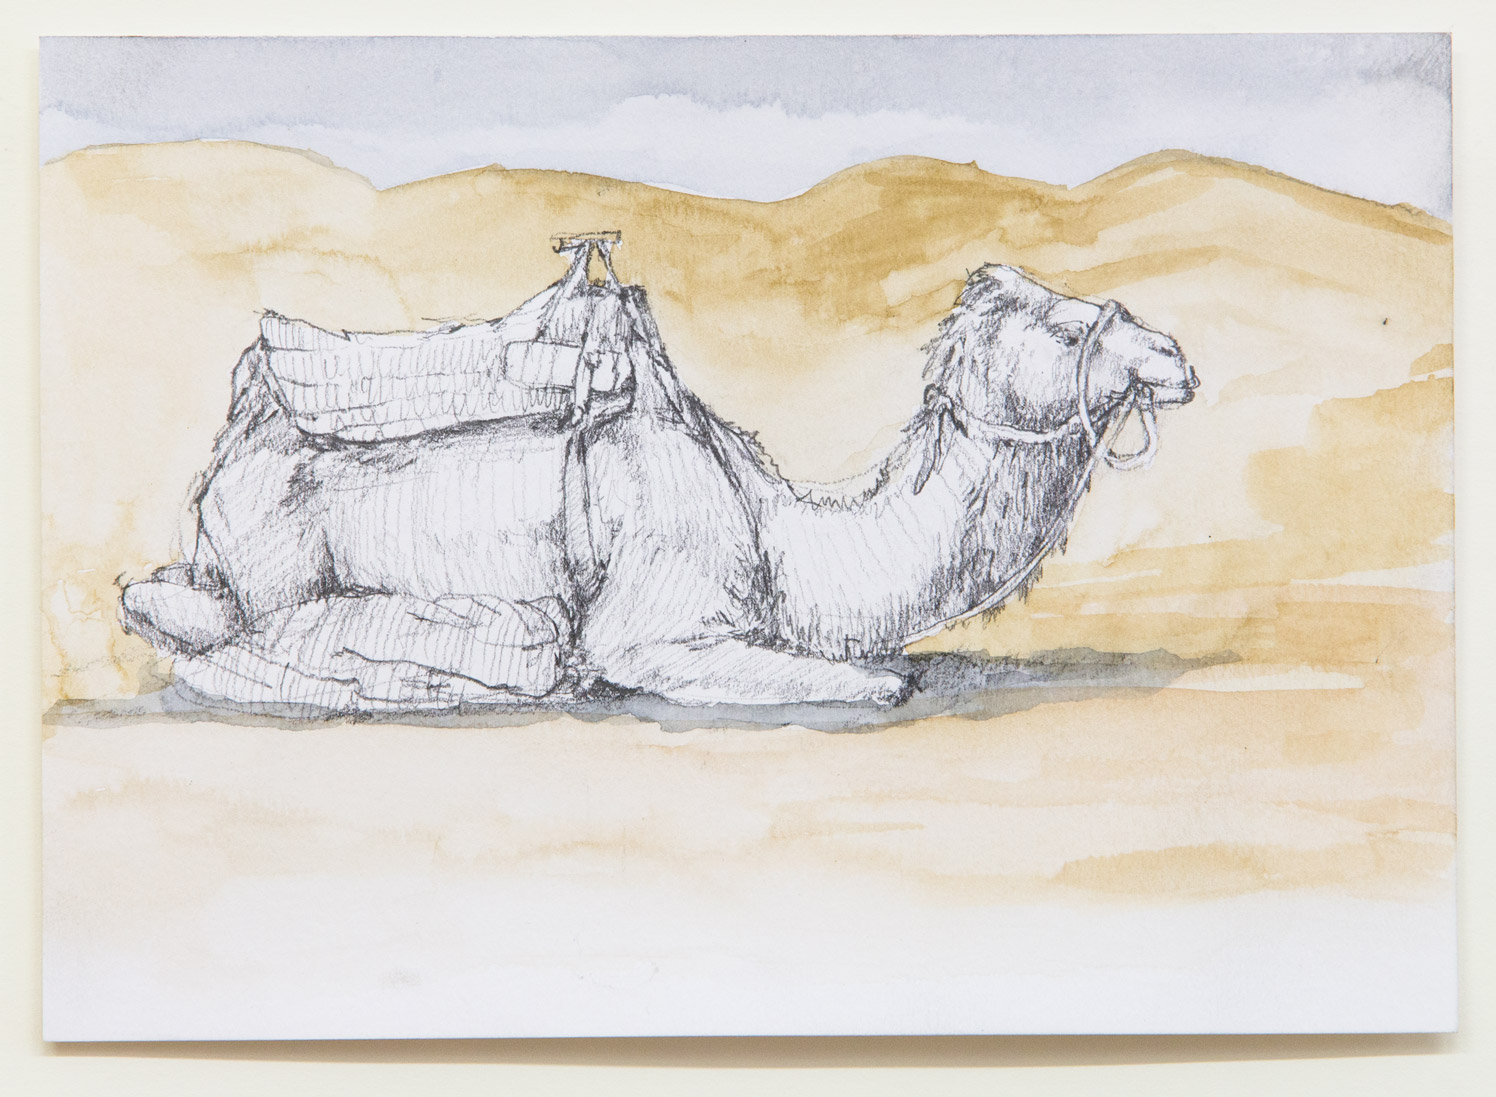 Merzouga; 21 x 15 cm; watercolour and pencil on paper; 2018